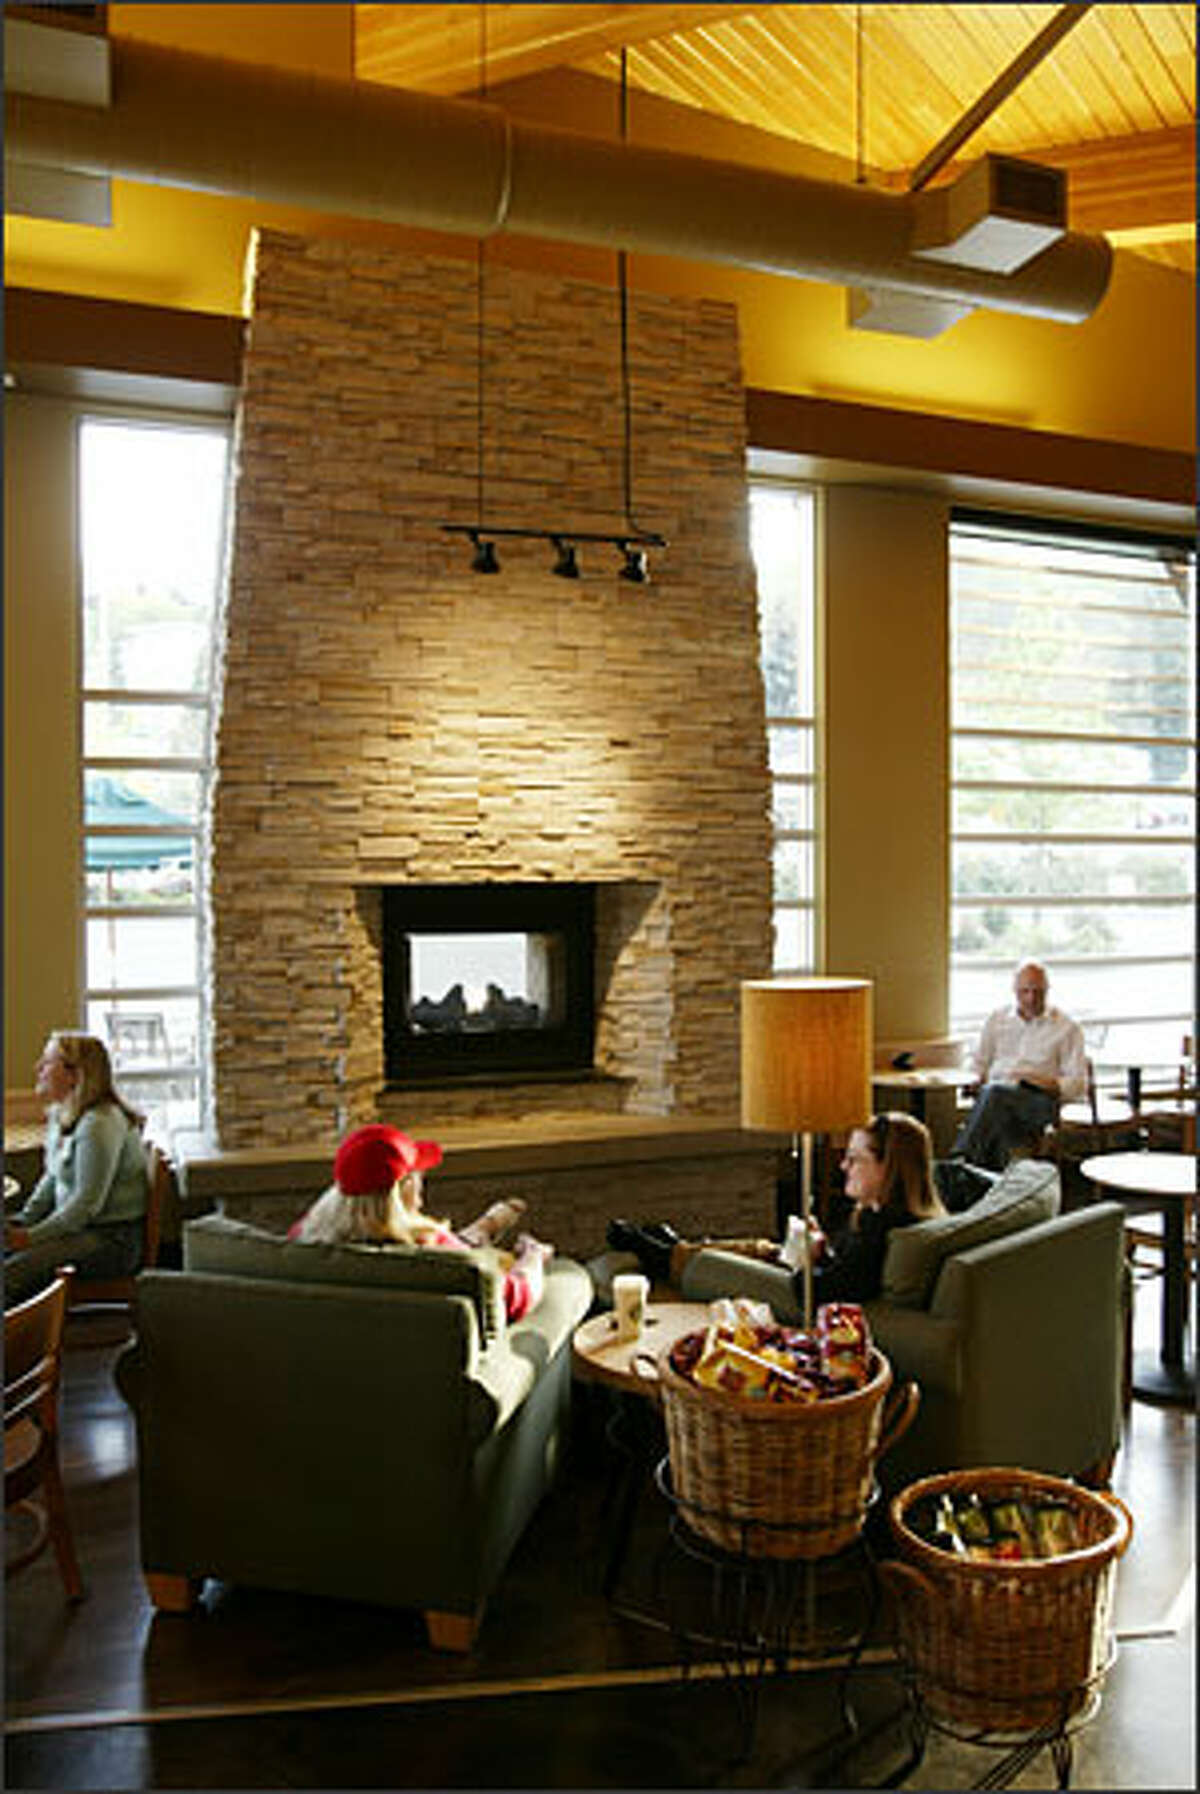 Starbucks put drama in its new Mercer Island store with an indoor/ outdoor gas fireplace.